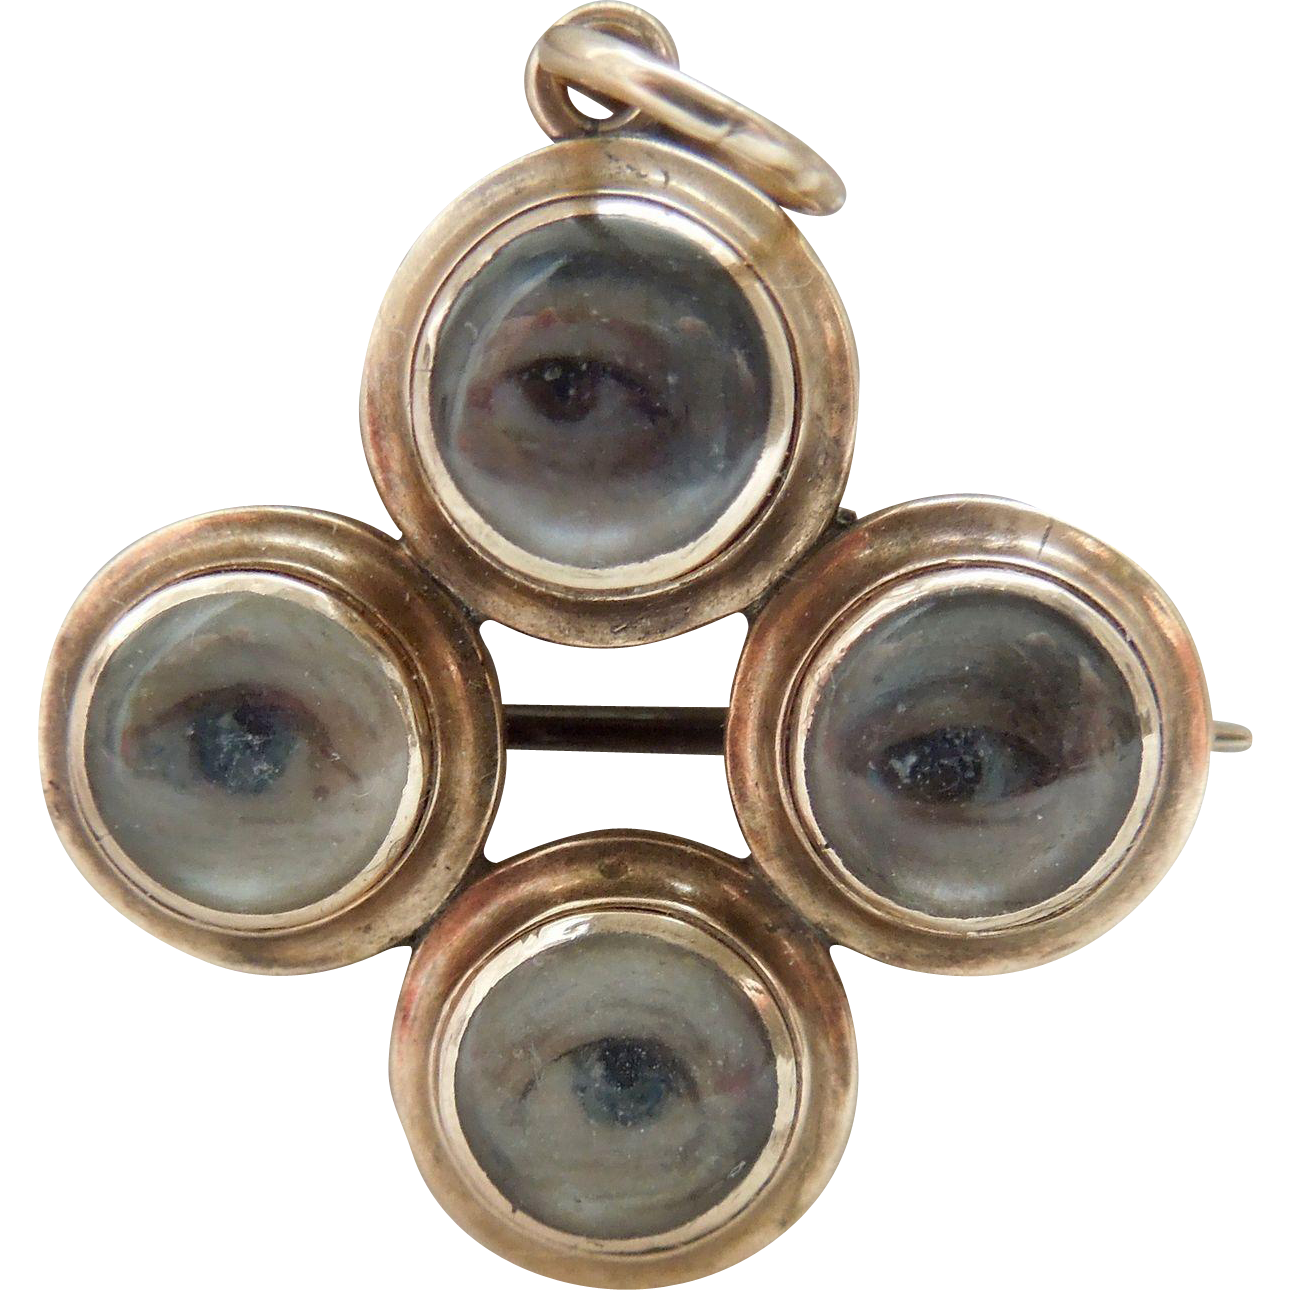 18 carat gold, Four Eye, Pendant/Brooch